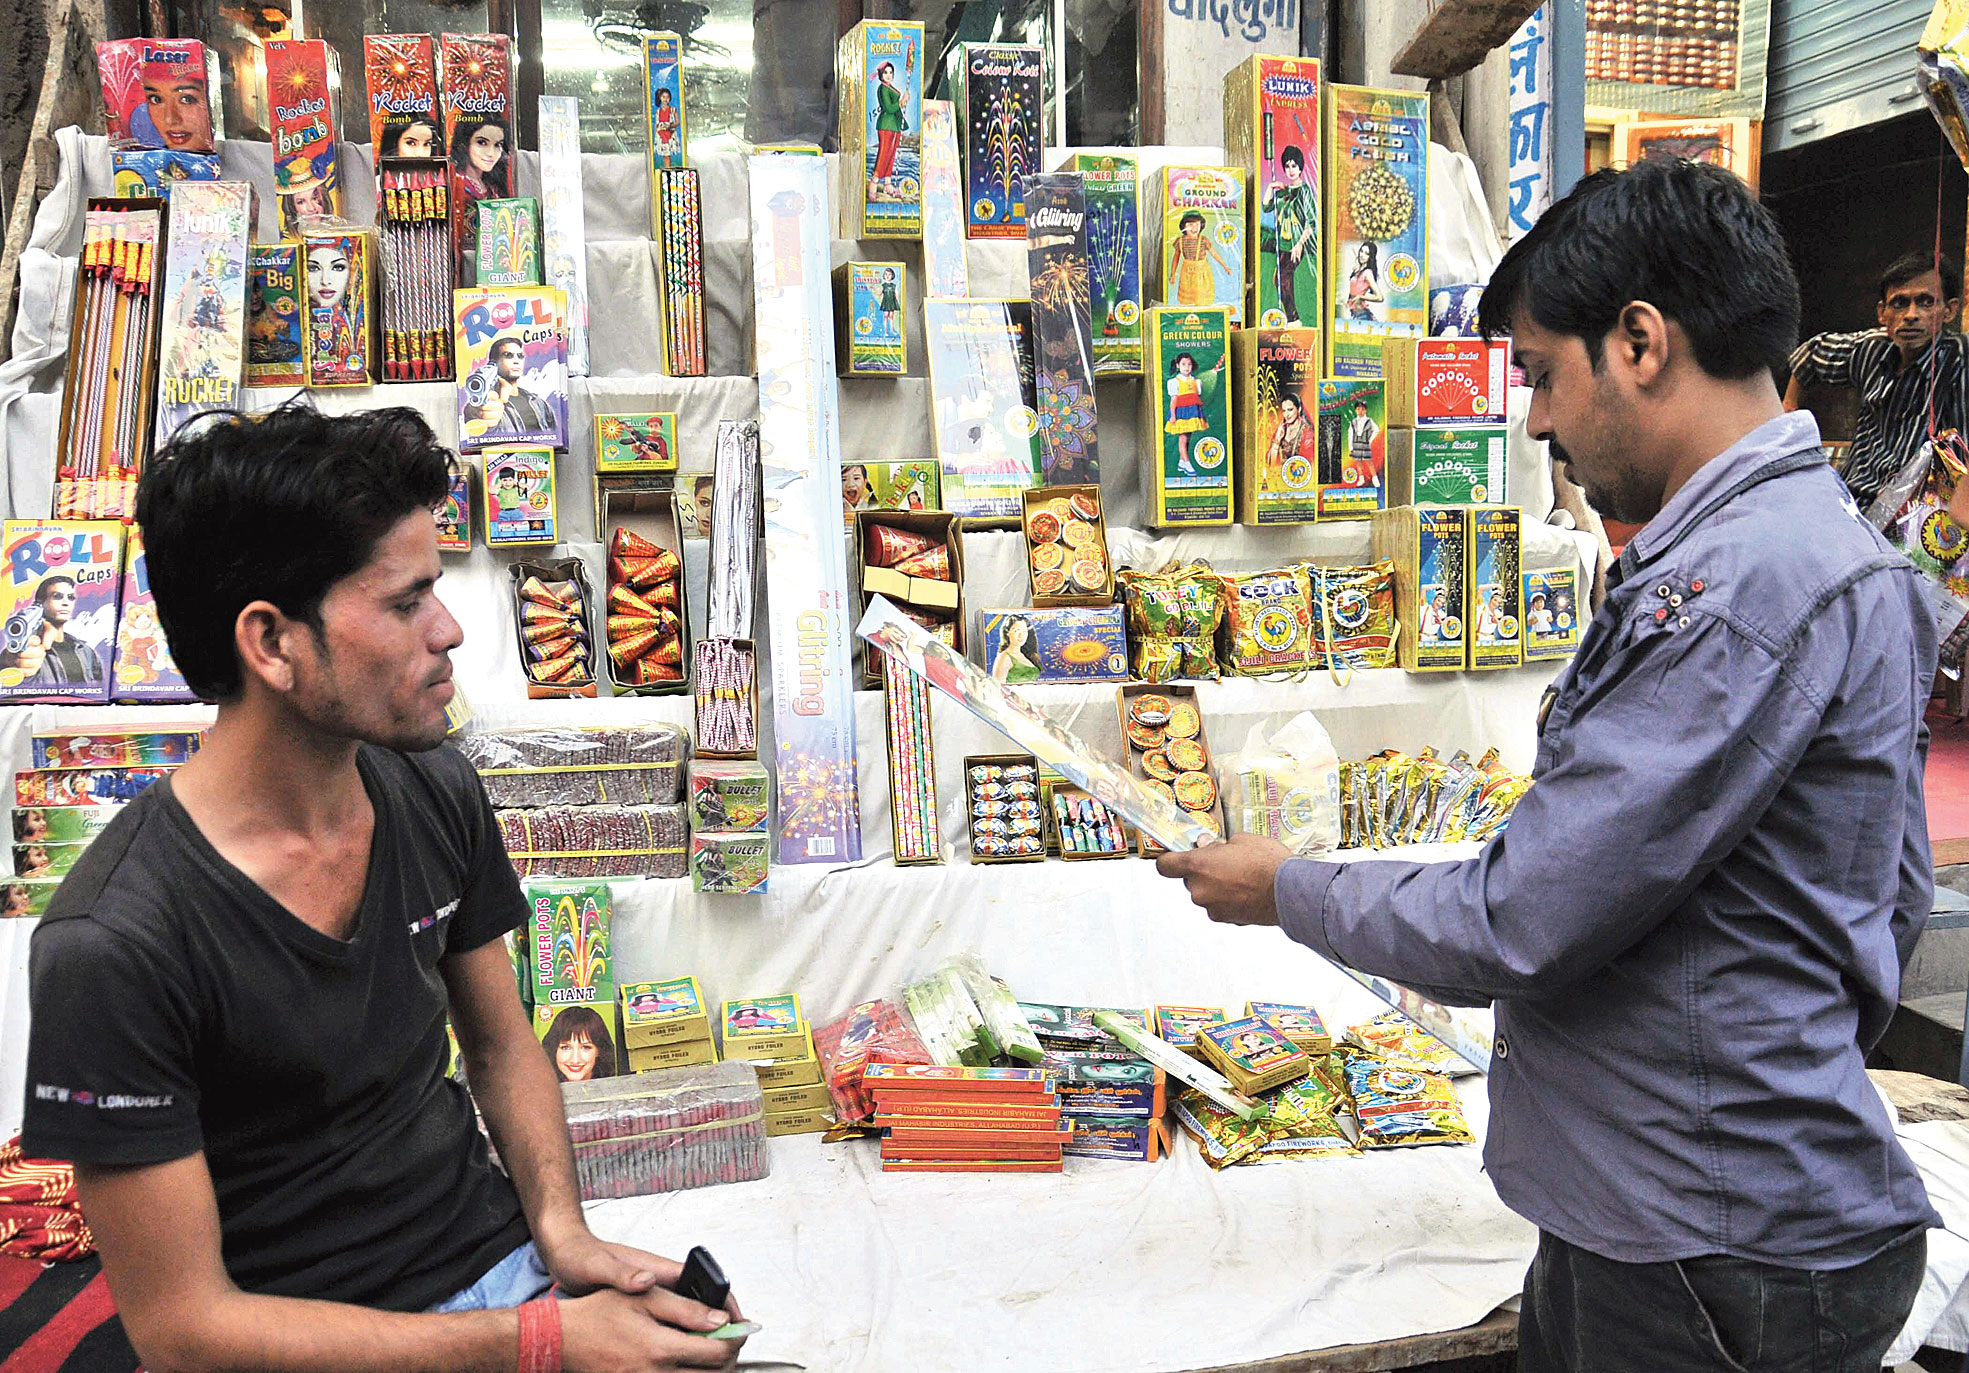 A cracker shop at Khajekalan in Patna City.